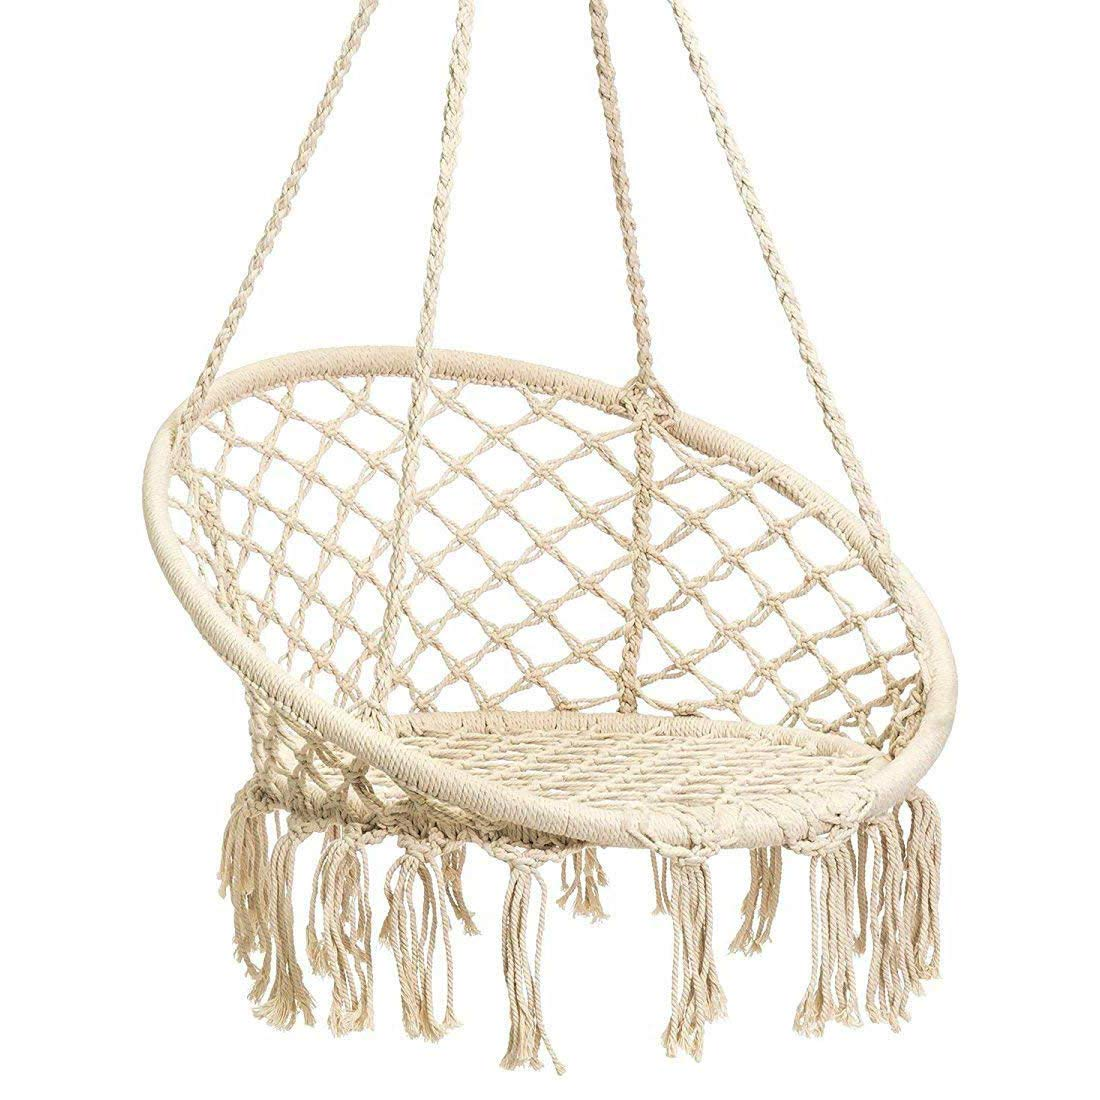 Outside hammock hanging rope chair swing seat stand indoor outdoor anthracite